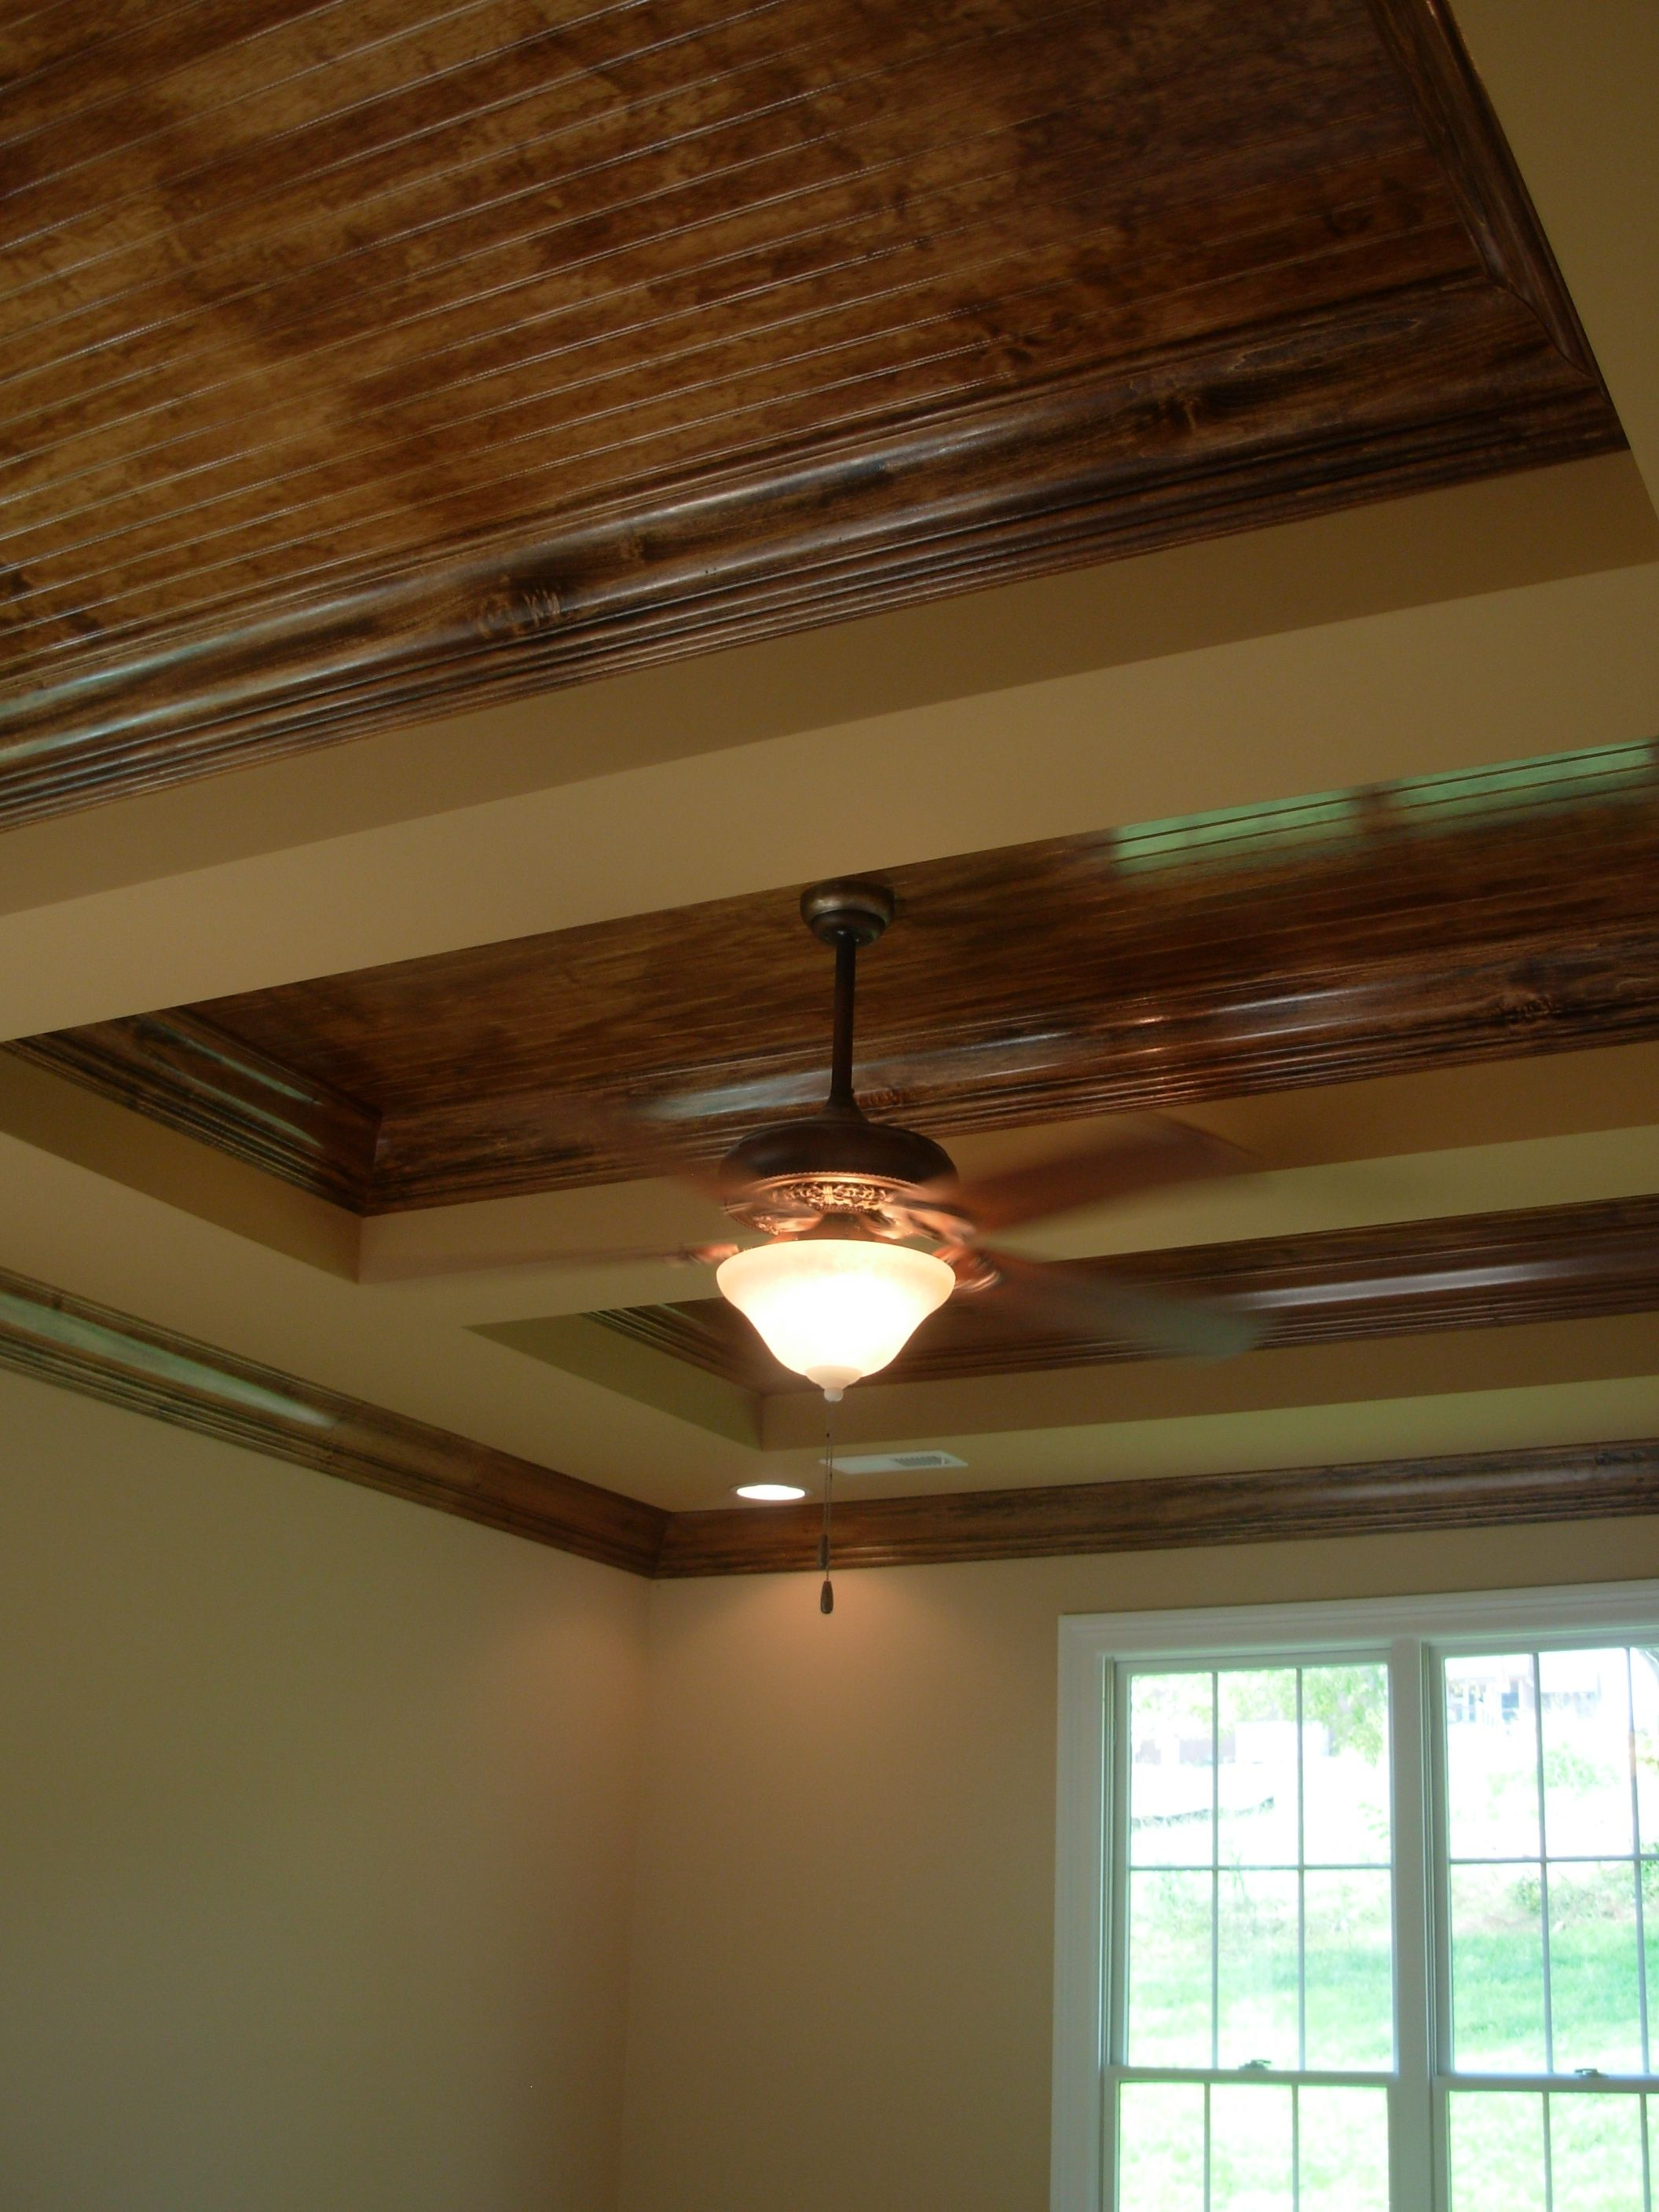 Stained Wood Ceilings By Jenny Blalock, Luxe Homes U0026 Design, Beadboard  Ceilings, Covered